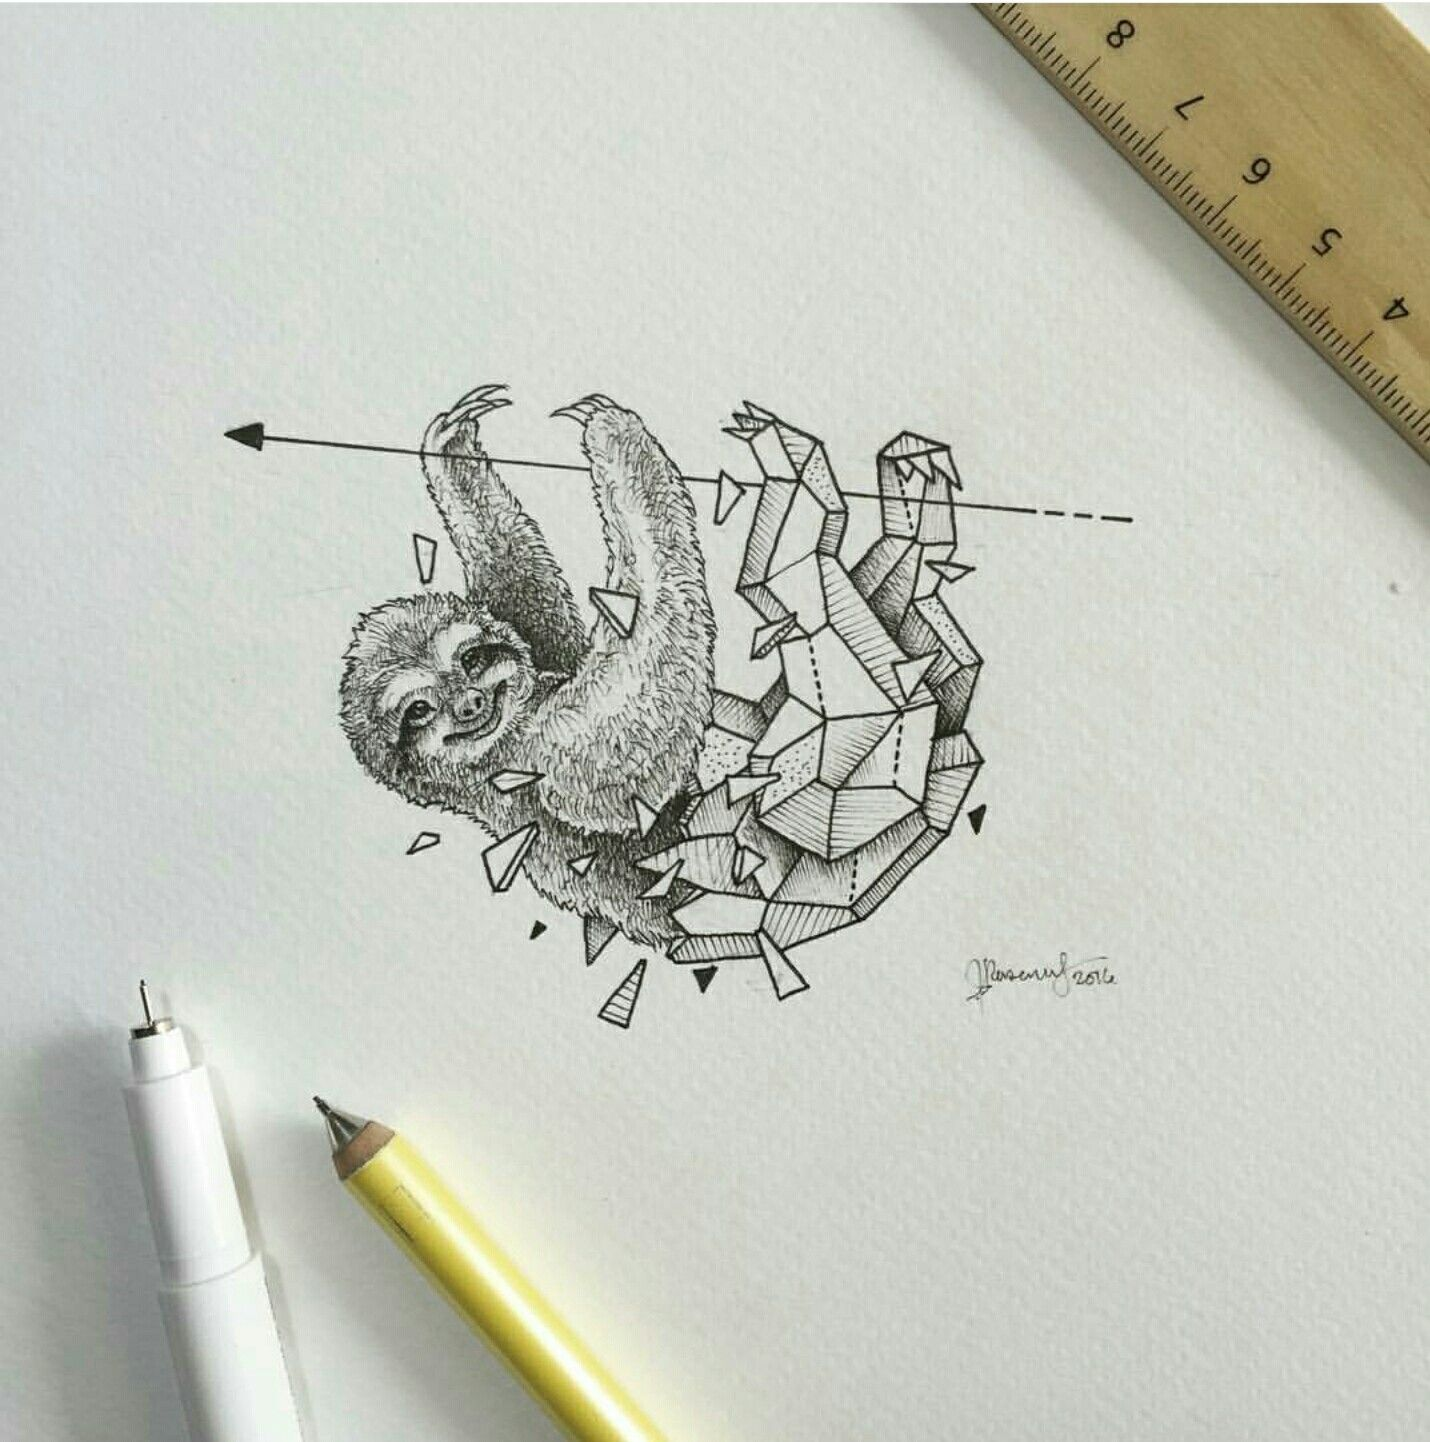 Pin von Zach Skerritt auf tattoo ideas | Pinterest | Geometrie ...